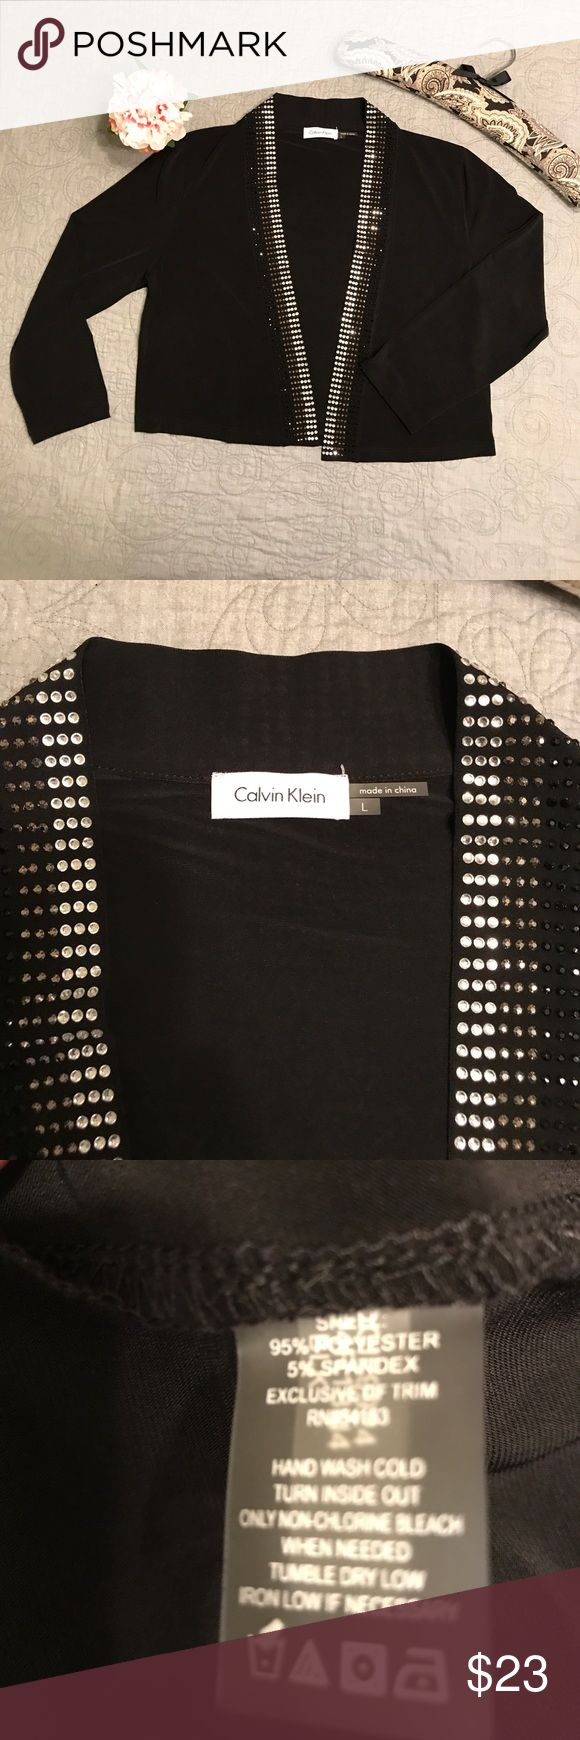 🌺 Calvin Klein Black Beaded Collar Shrug NWOT 🌺 This shrug has never been worn. It is in perfect condition. It is 95% polyester and 5% spandex. It is very elegant, yet it could easily be worn with jeans and a fun top underneath. The beaded Collar would really sparkle on the dance floor. All reasonable offers considered. 🌺 Calvin Klein Sweaters Shrugs & Ponchos